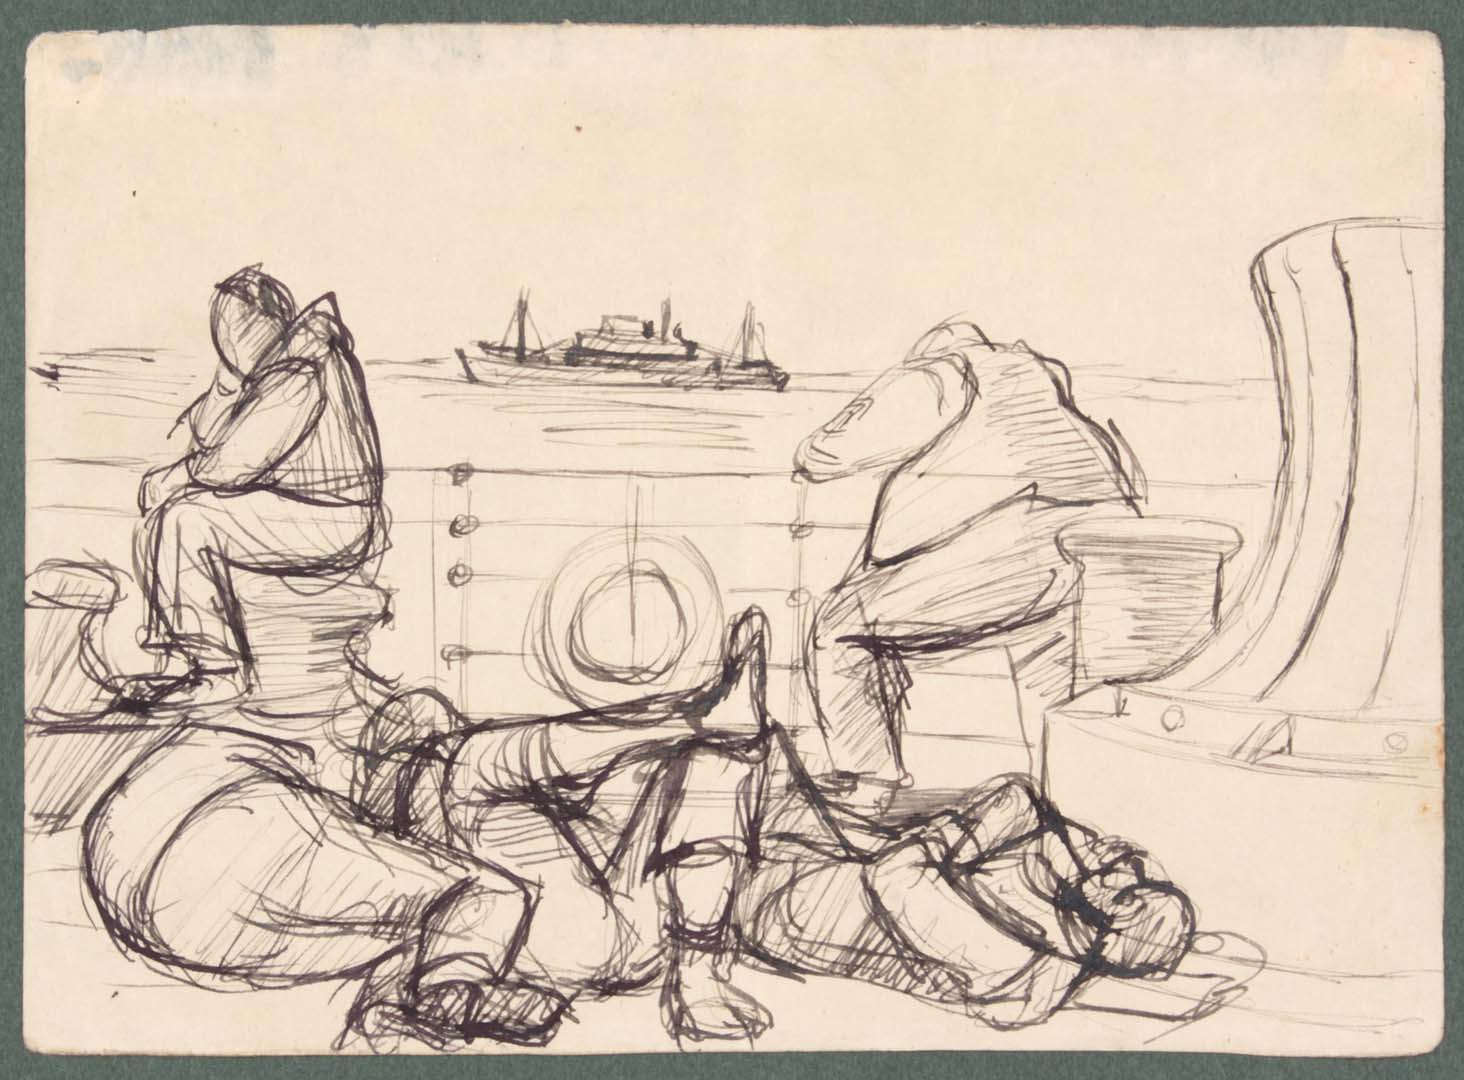 1949 NT (On the Ship 2) Pen and Ink on Paper 4.8125 x 6.625